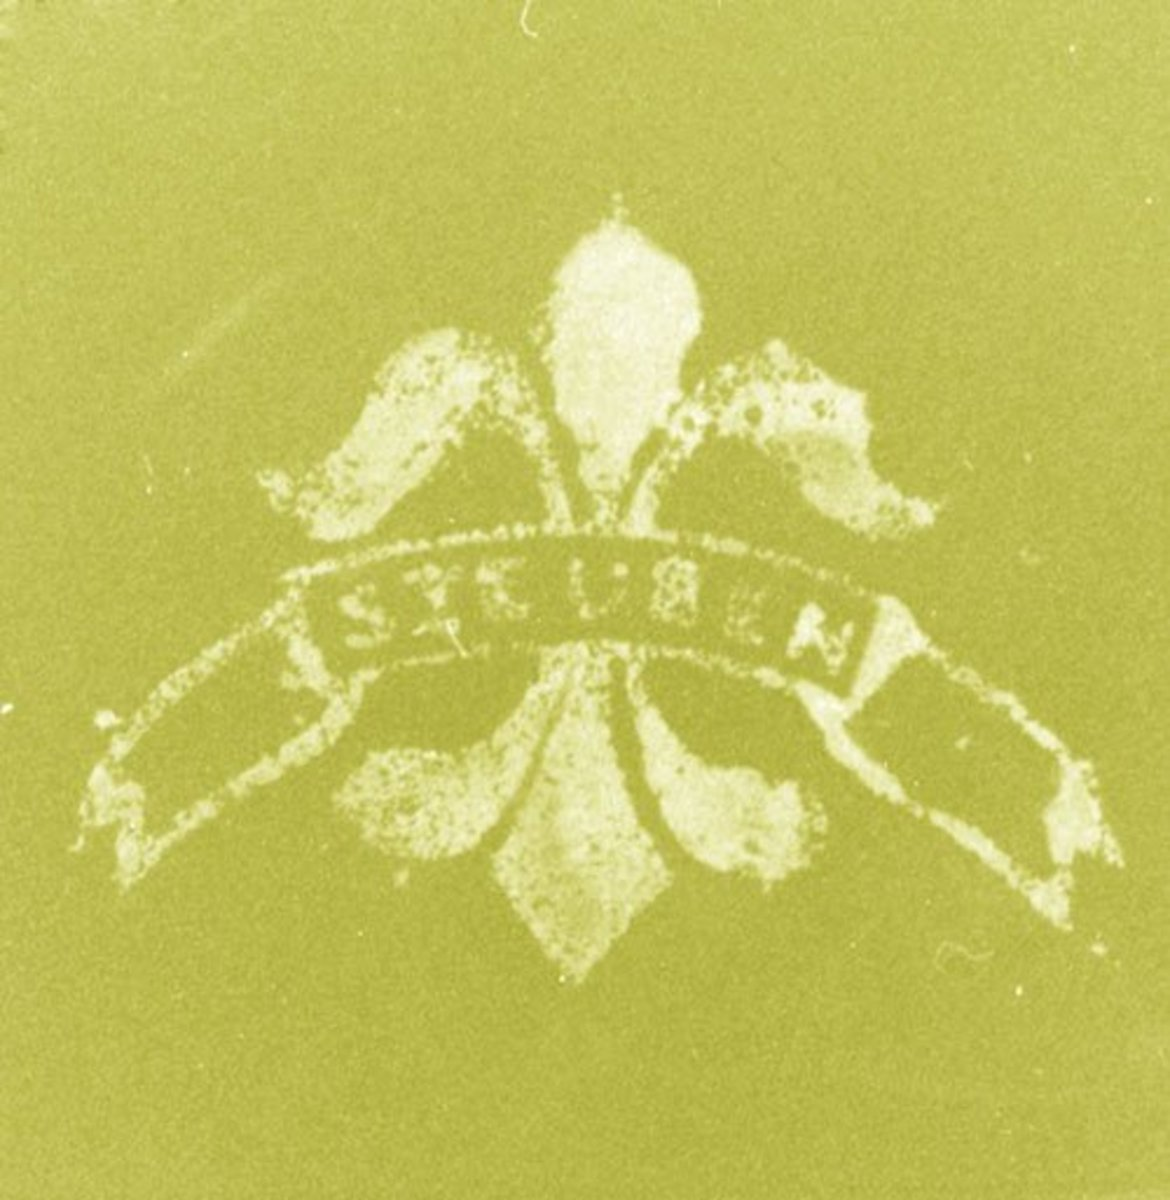 Typical forged acid fleur-de-lis mark. Blurred, illegible letters and a rough-edged outline.